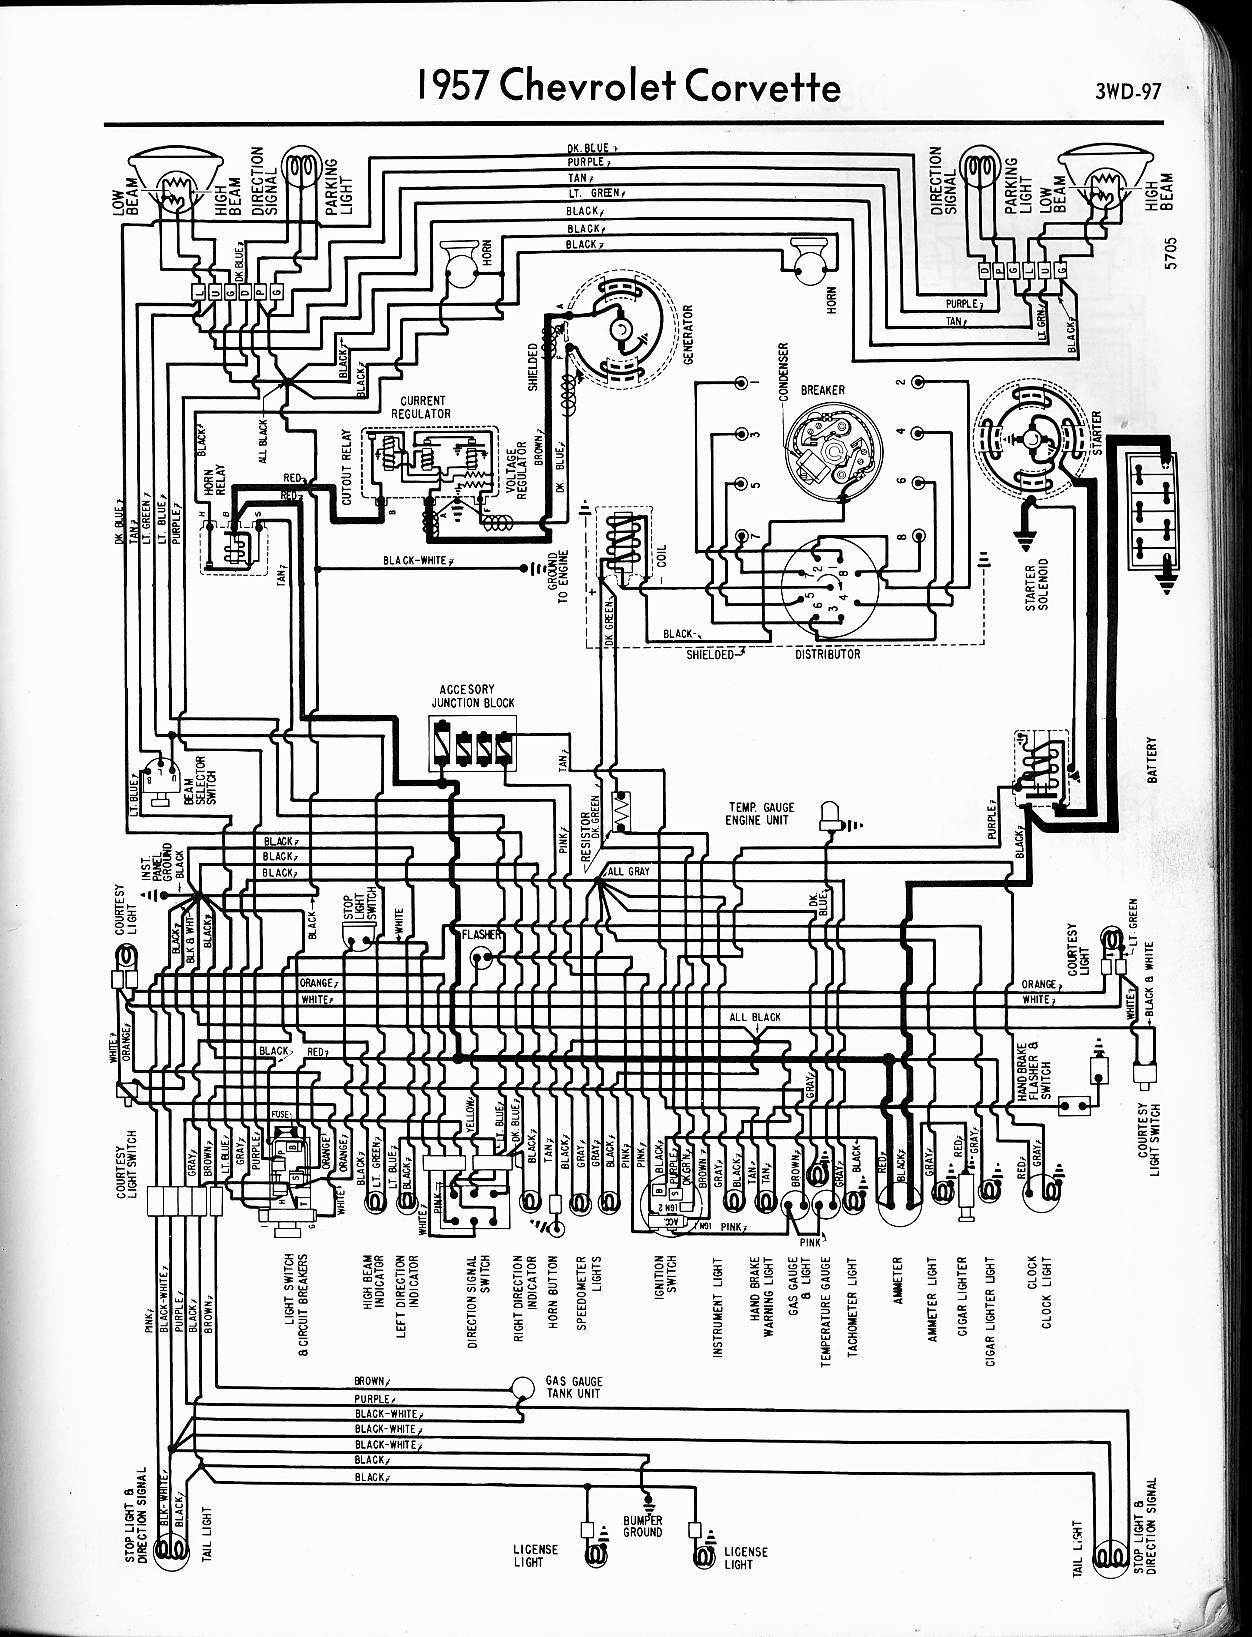 MWireChev57_3WD 097 57 65 chevy wiring diagrams 57 chevy truck wiring harness at mifinder.co